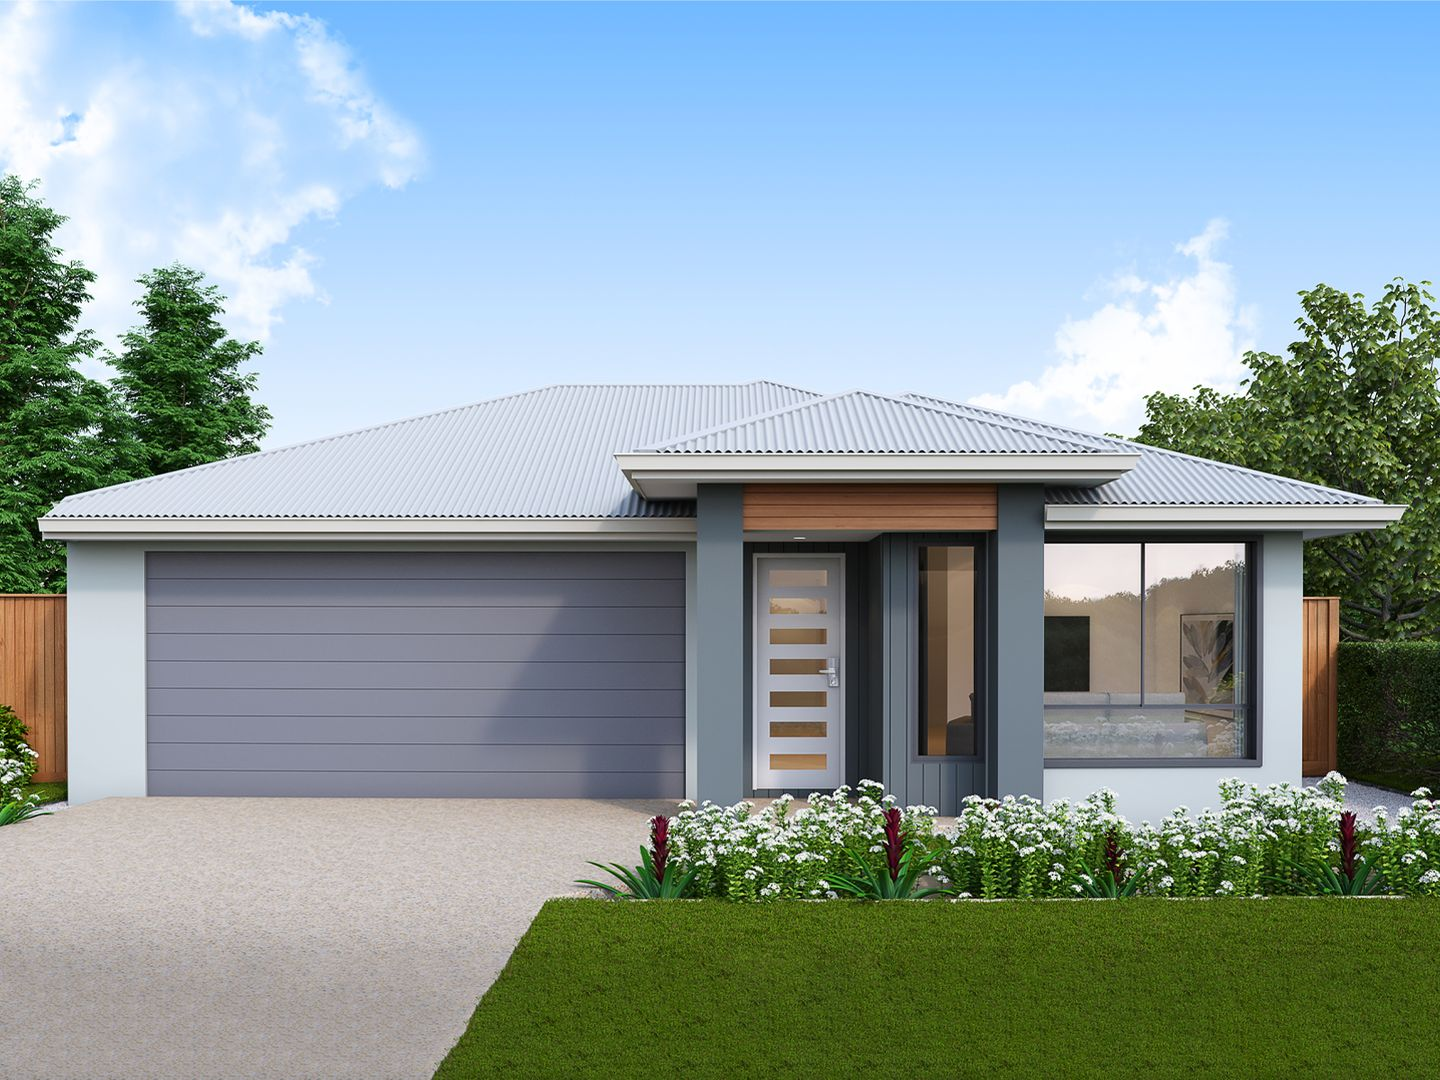 Lot 1105/481 (Arbor II) Waterford Rd, Forest Lake QLD 4078, Image 0